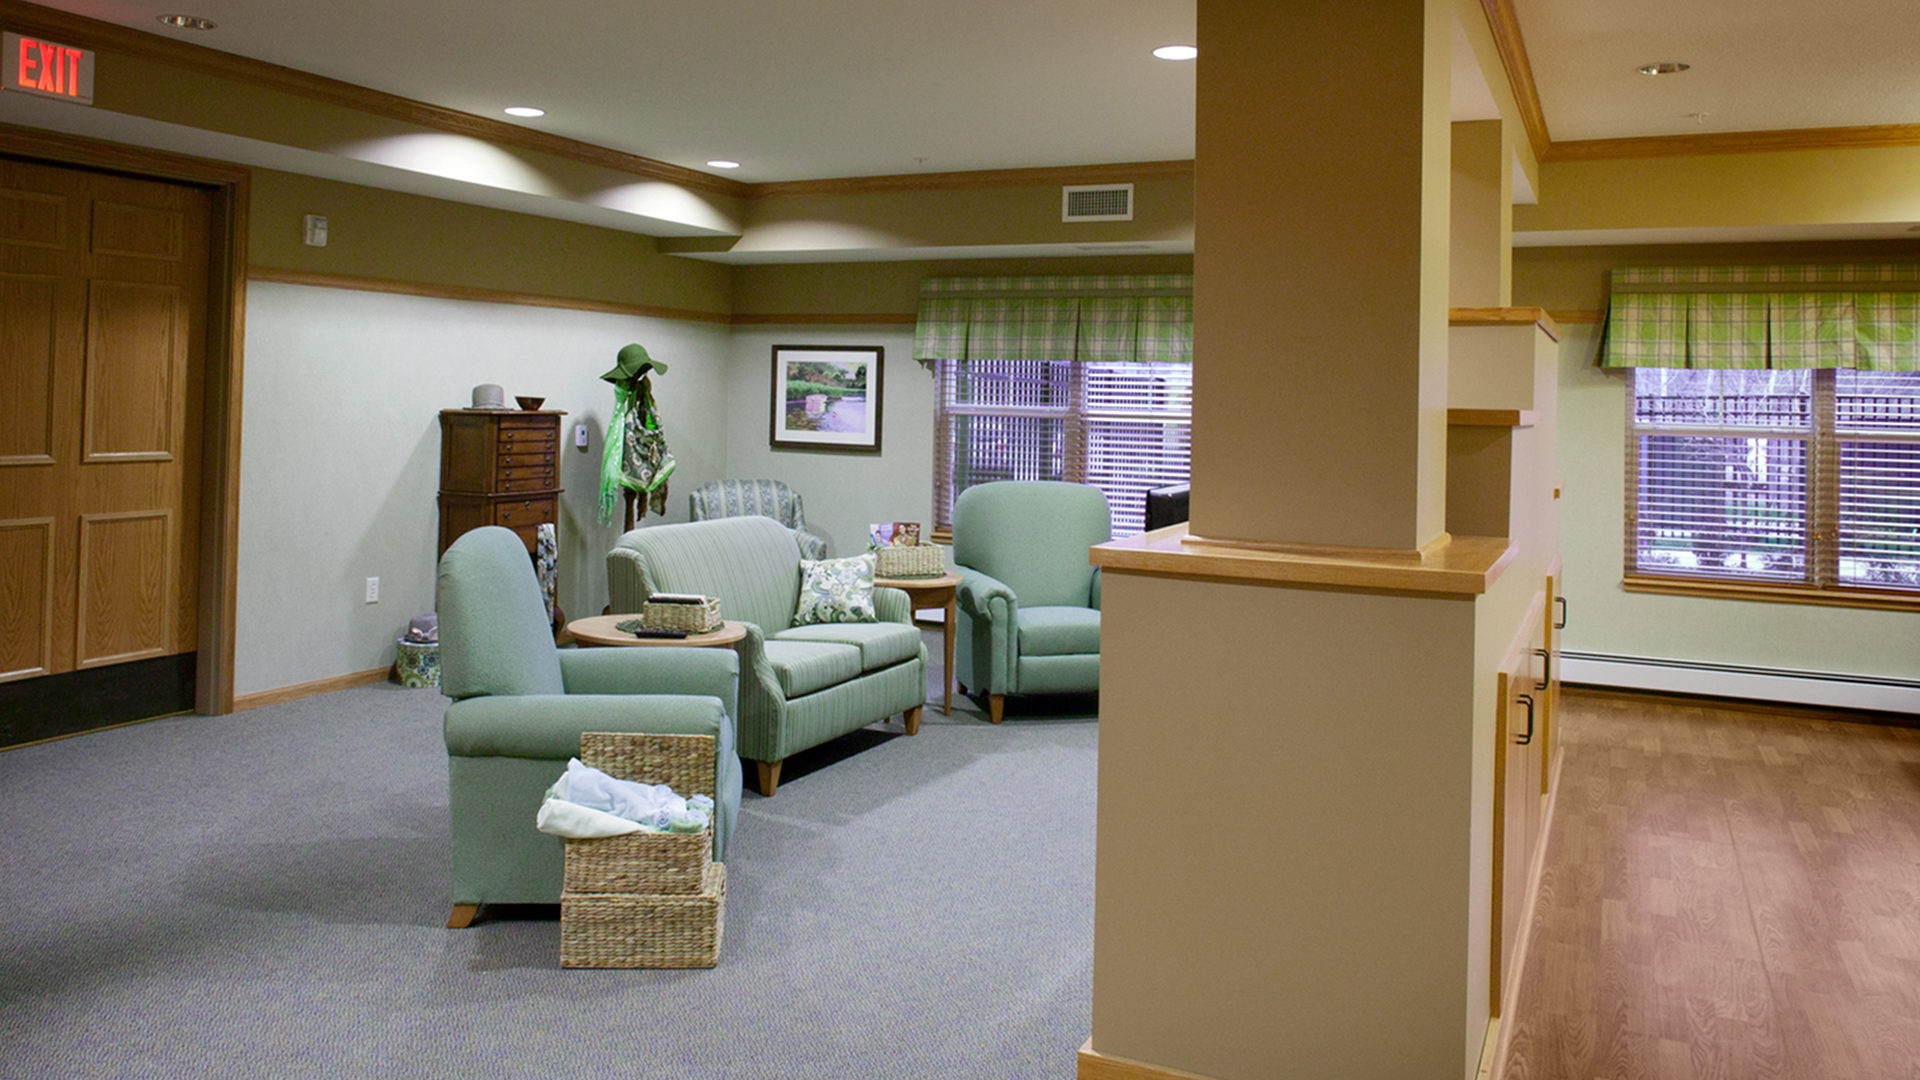 Valley Ridge Senior Residential Housing Burnsville MN Community TV room